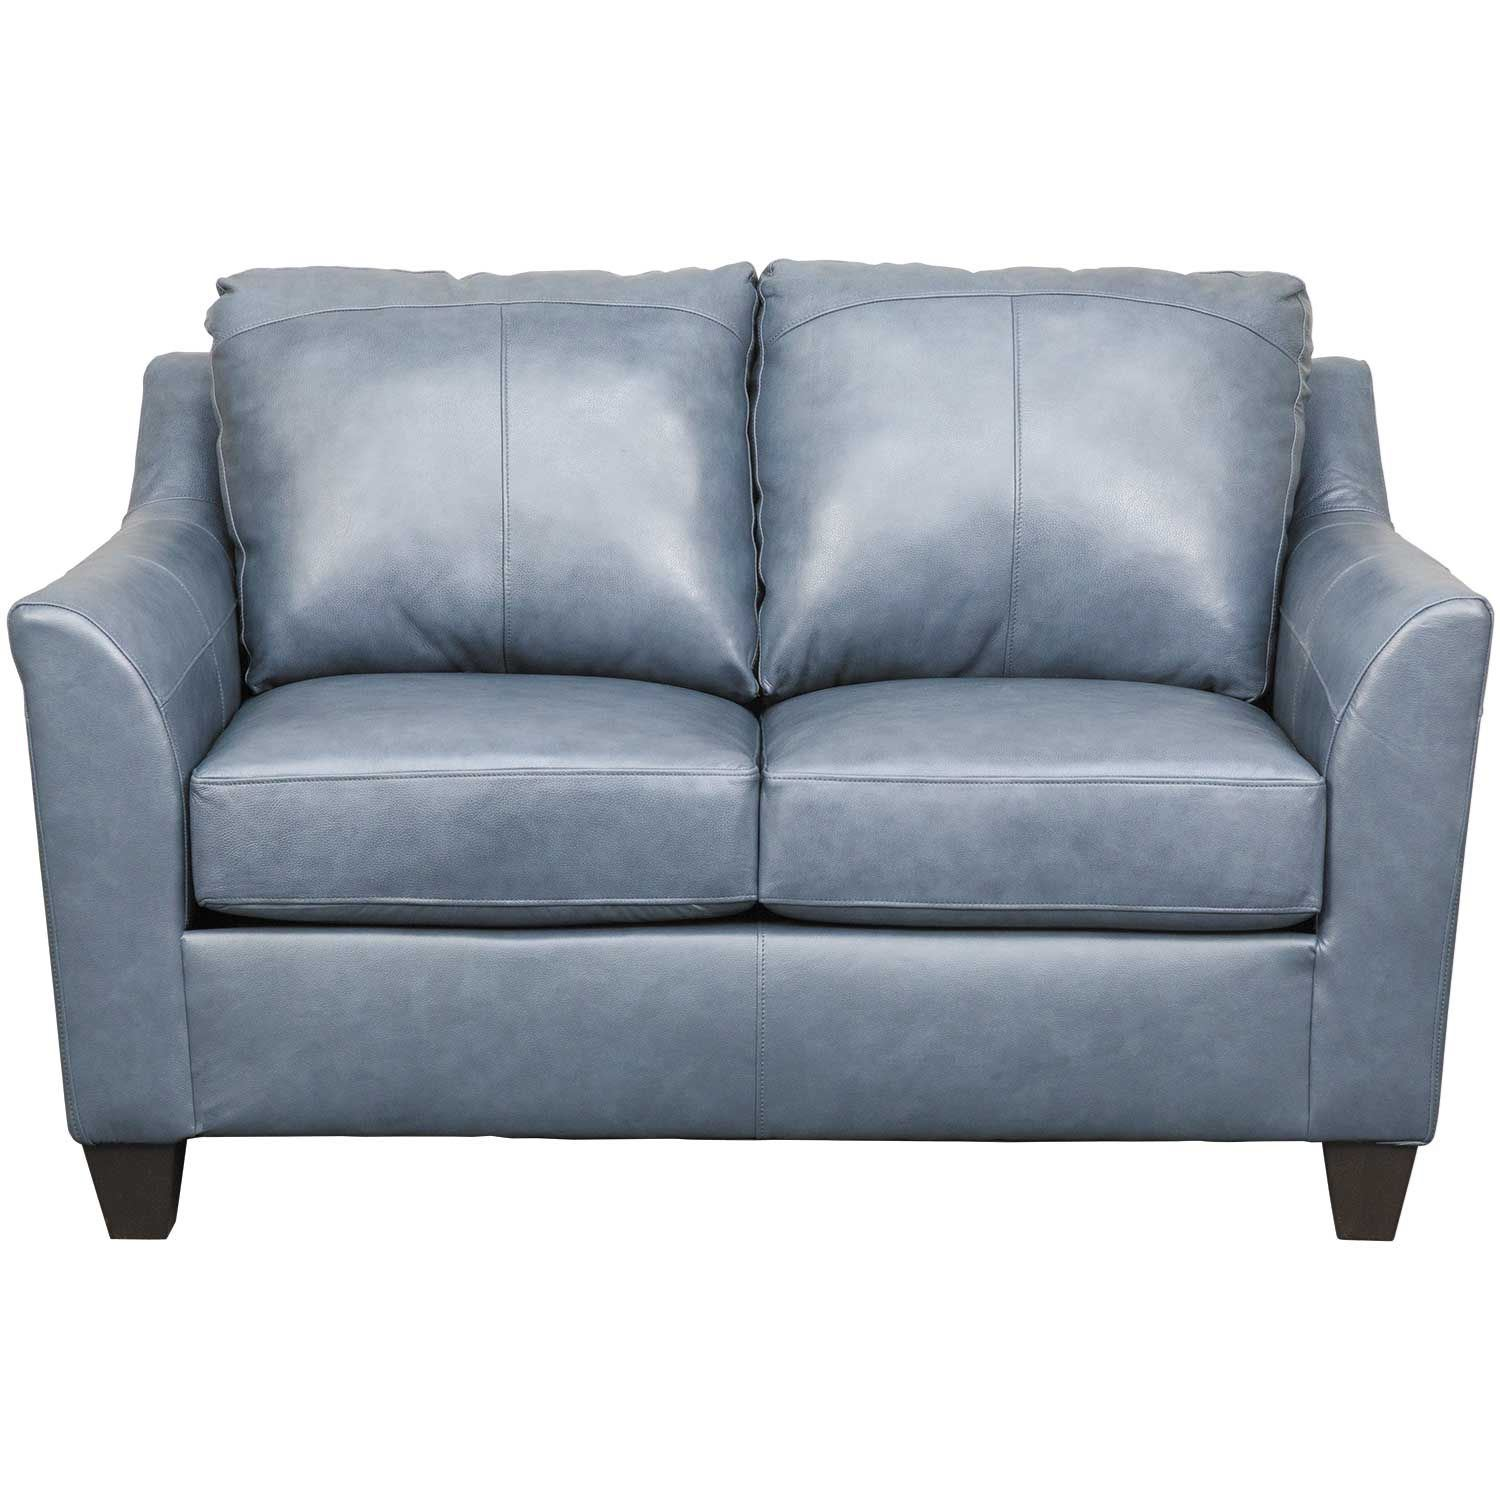 Picture of Declan Shale Leather Loveseat